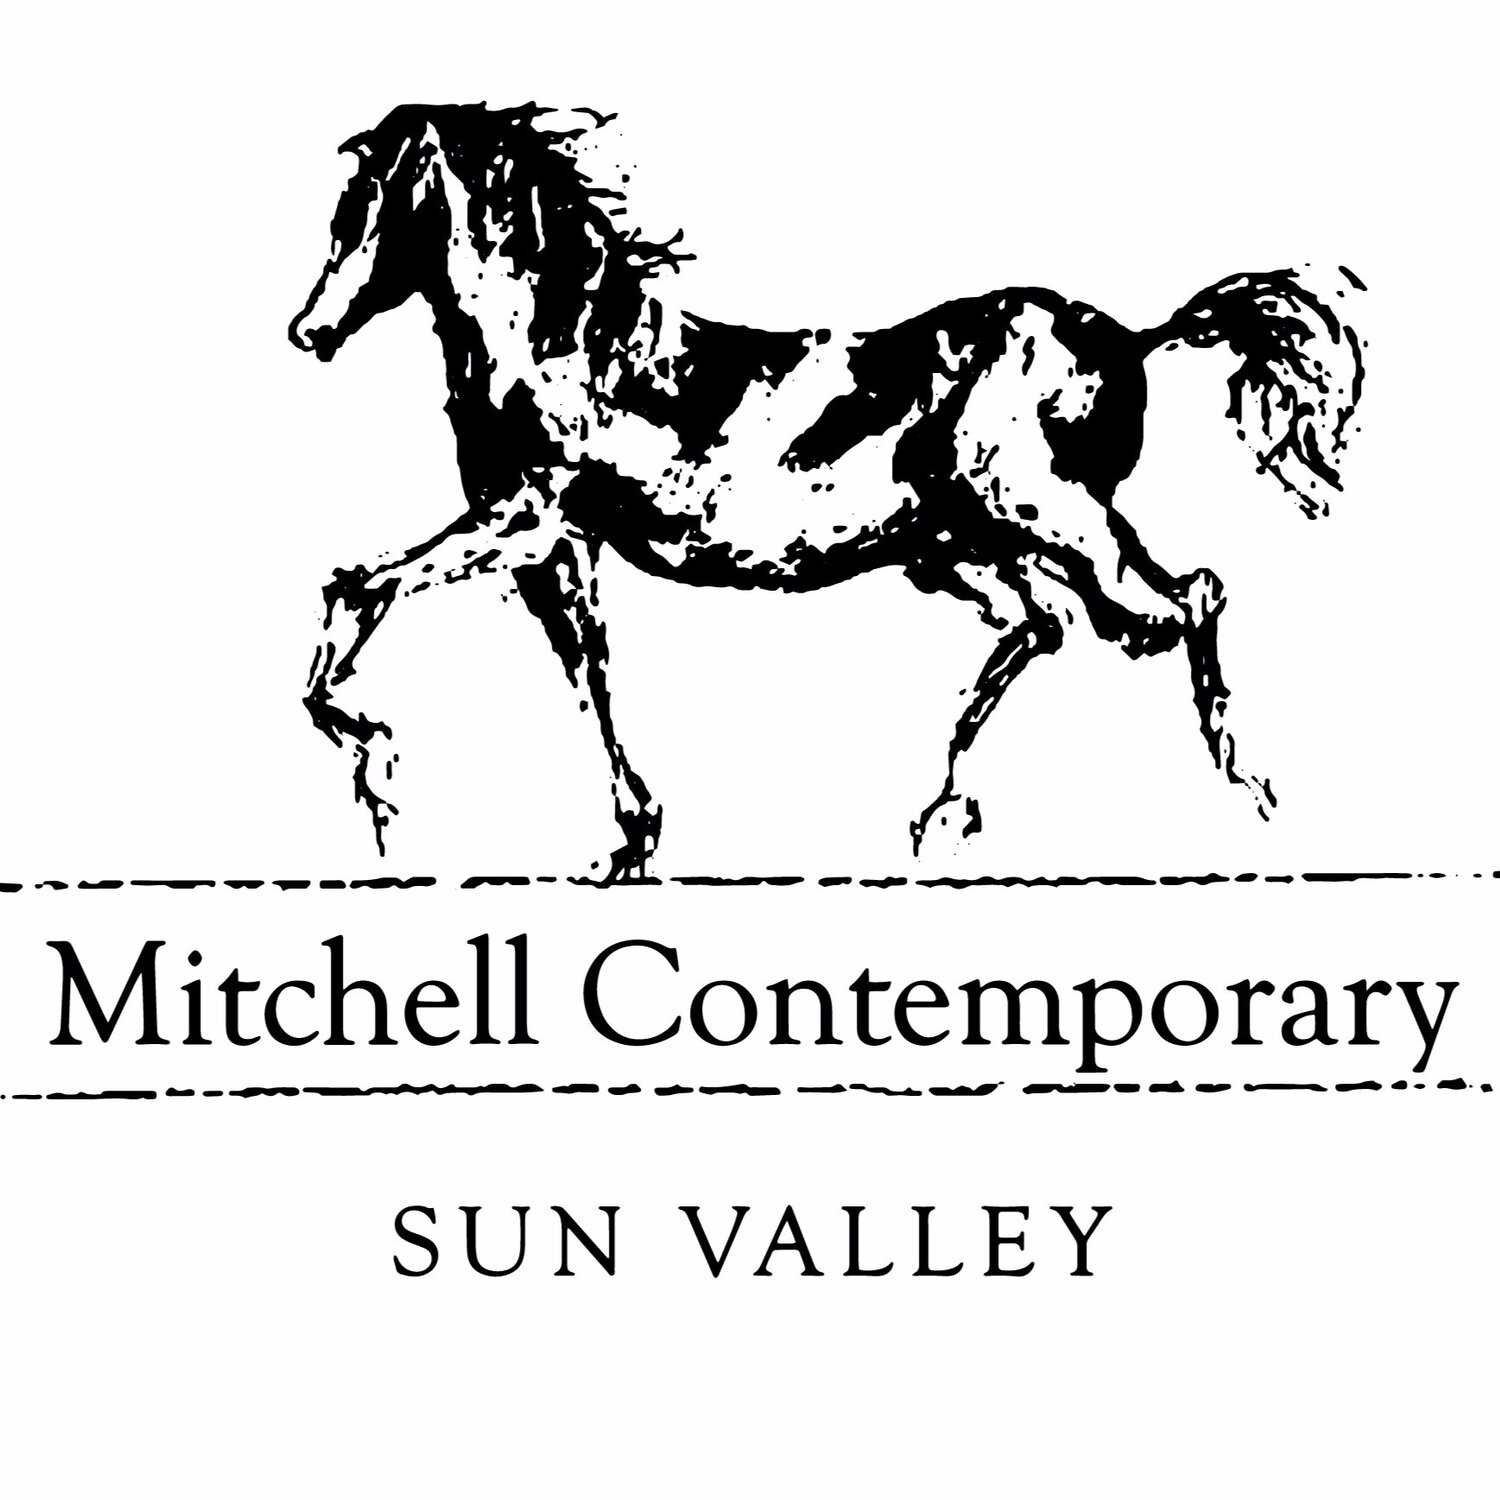 Mitchell Contemporary